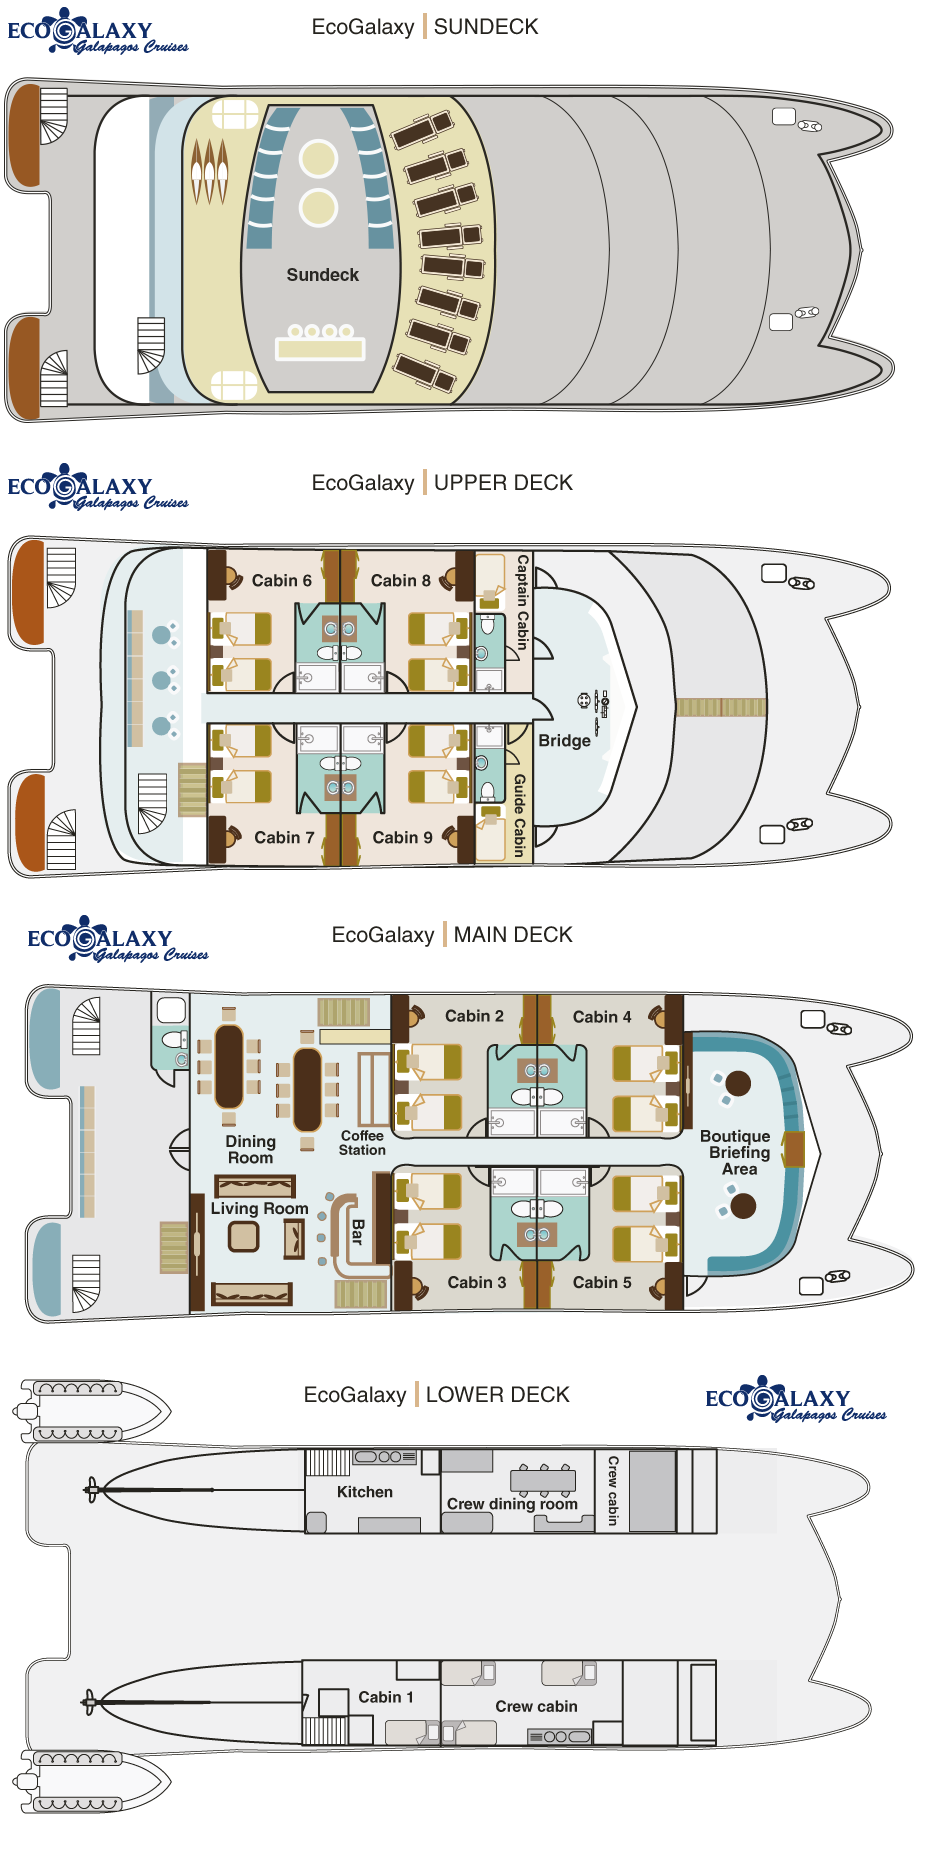 Cabin layout for Eco Galaxy